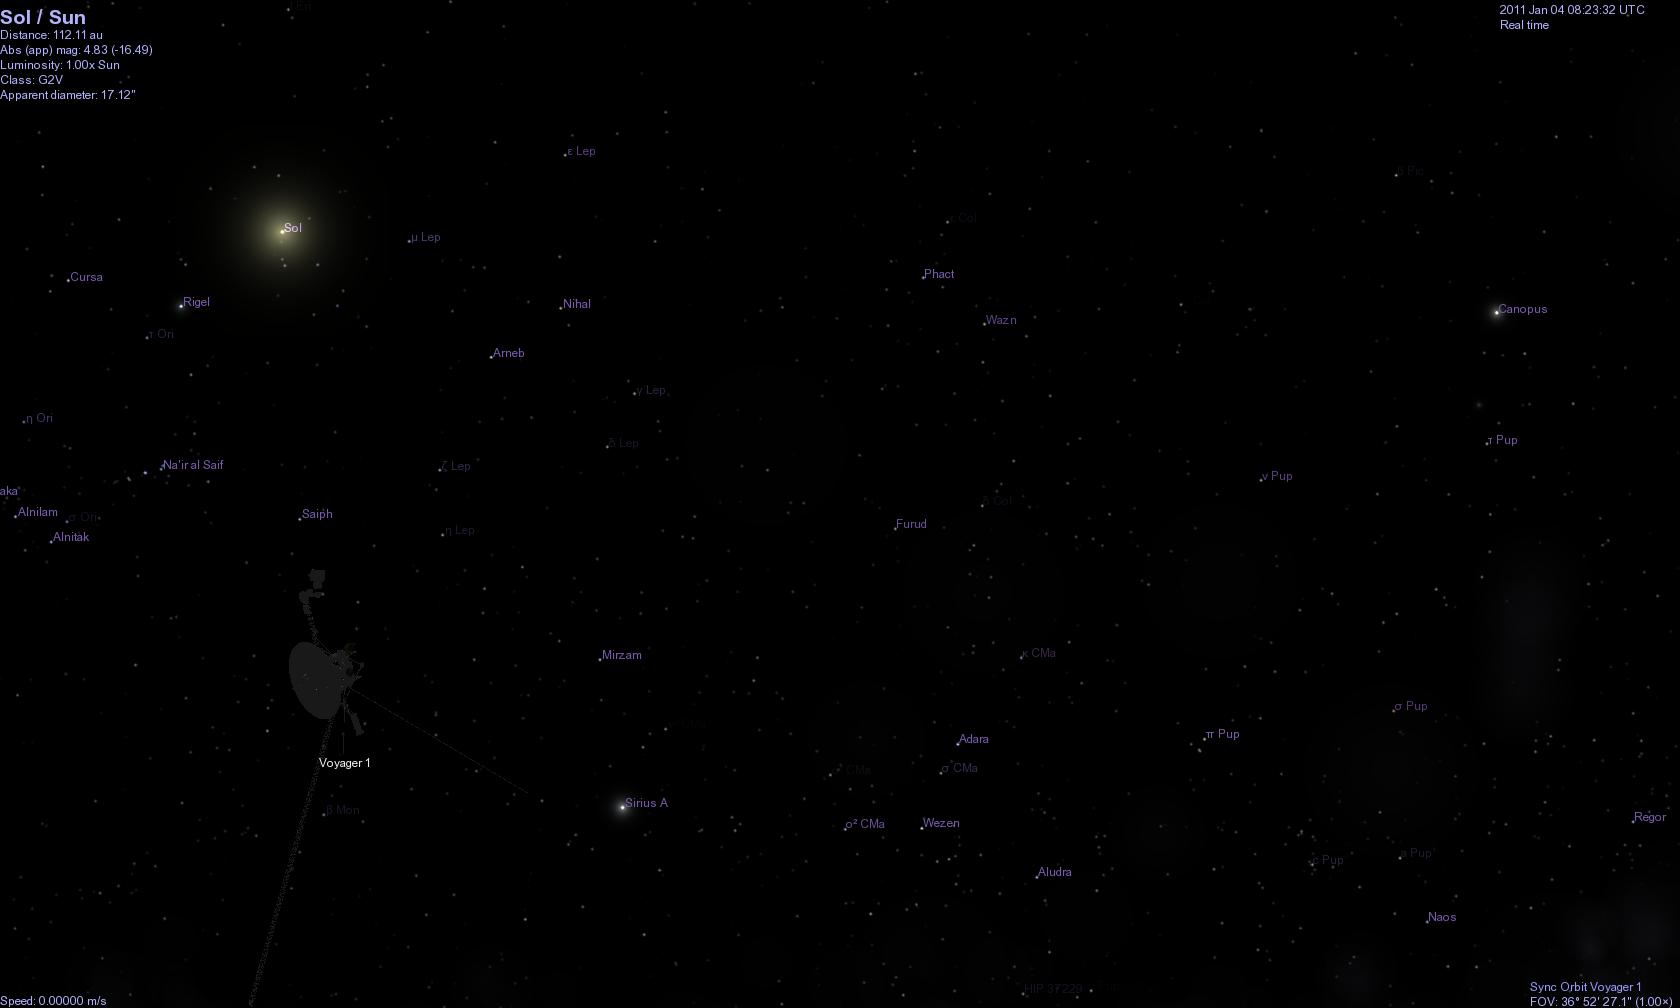 Voyager 1 Latest Images Stars (page 4) - Pics about space